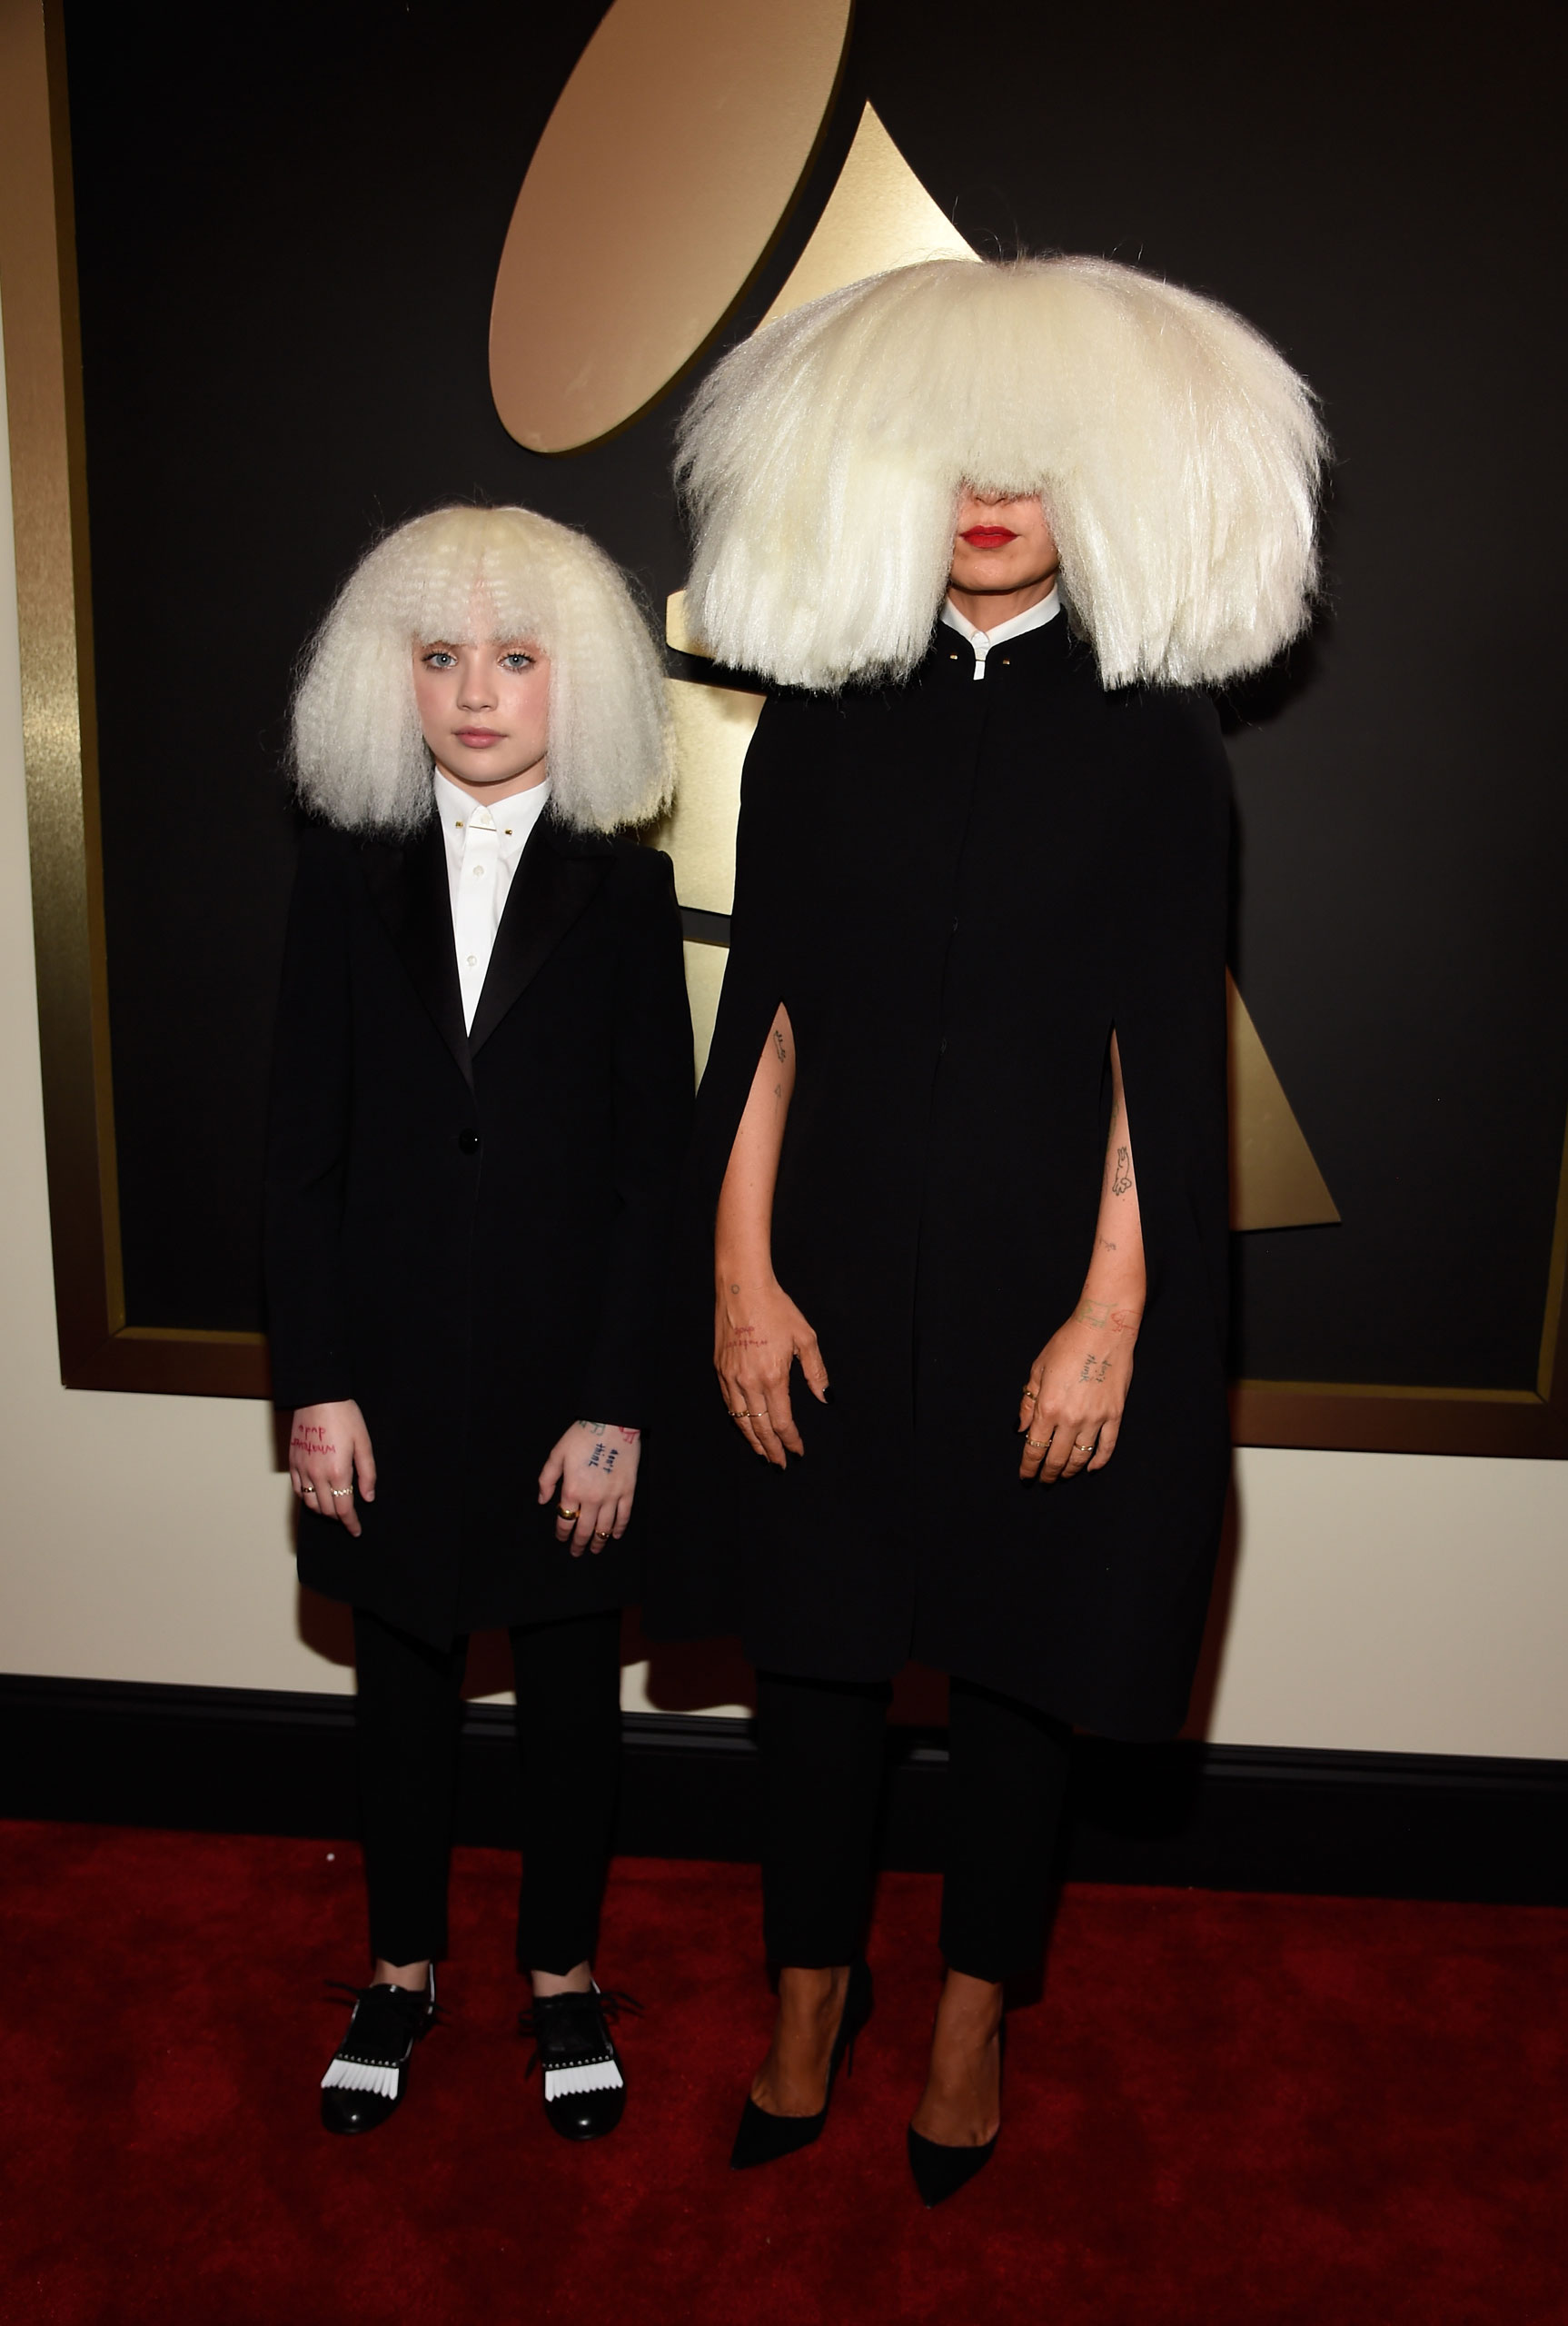 Sia attends the 57th Annual Grammy Awards at the Staples Center on Feb. 8, 2015 in Los Angeles, Calif.